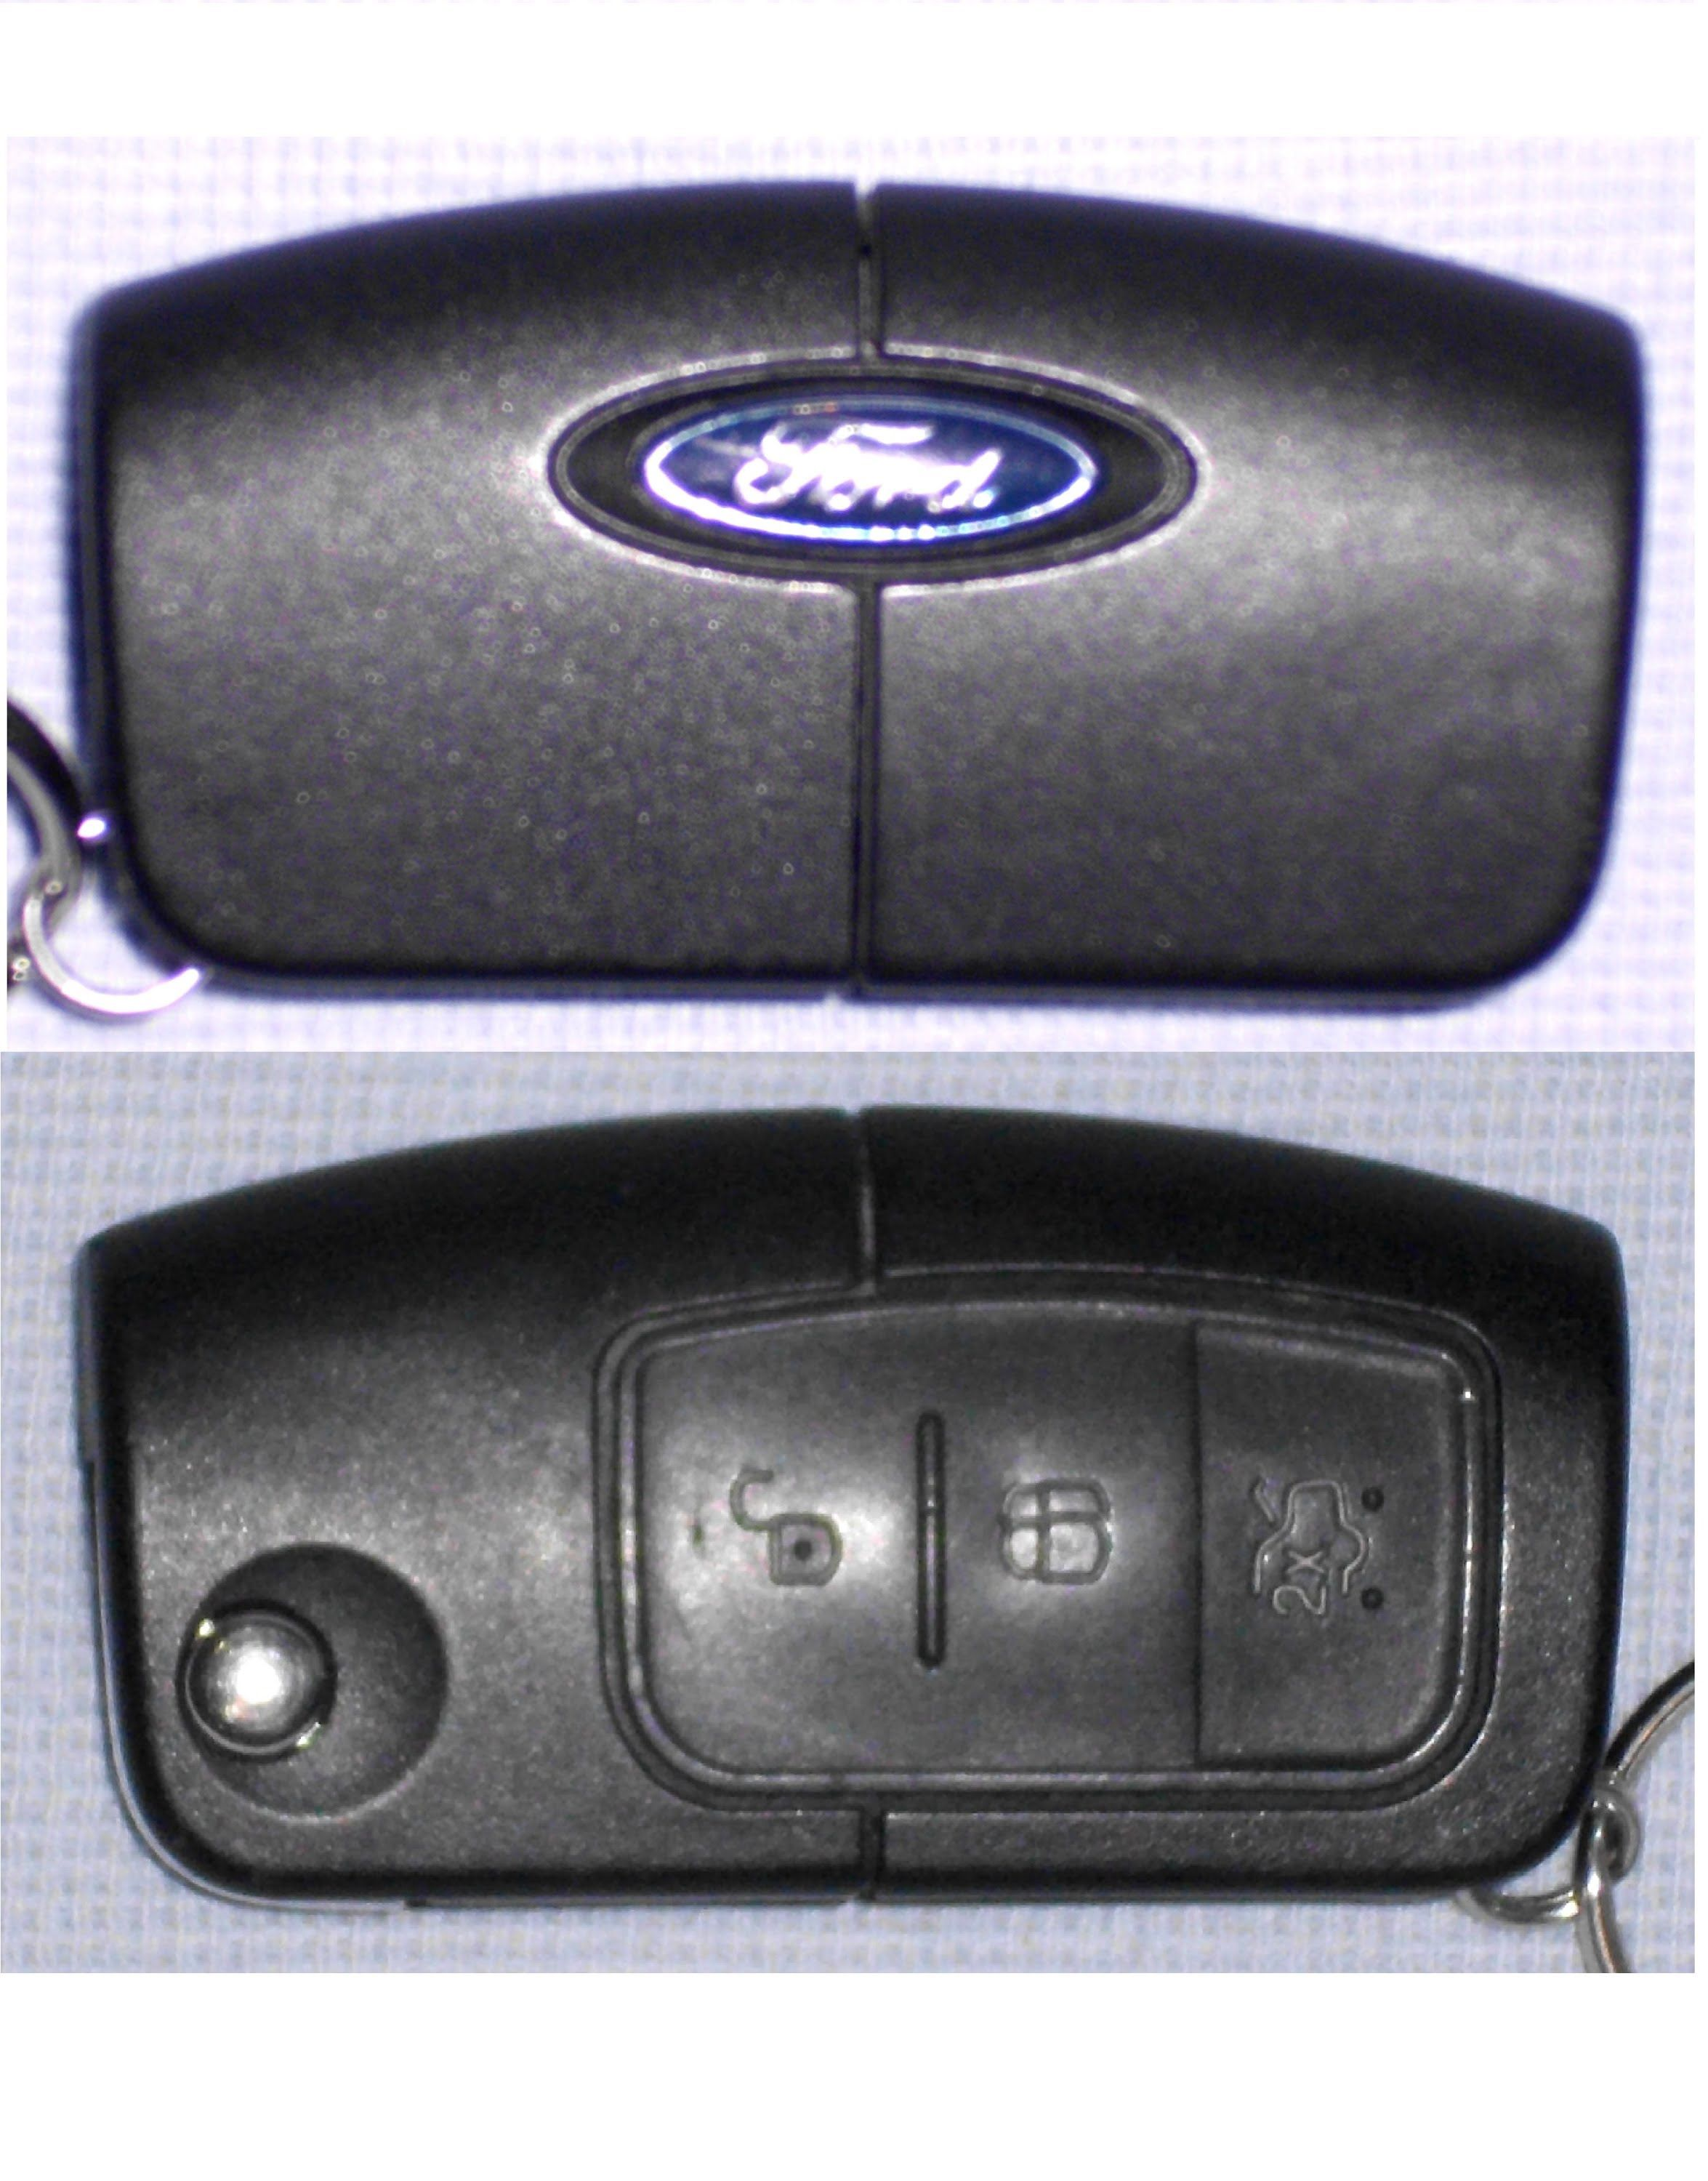 Ford Key Fob Battery Replacement How To Change Replace Remote 2009